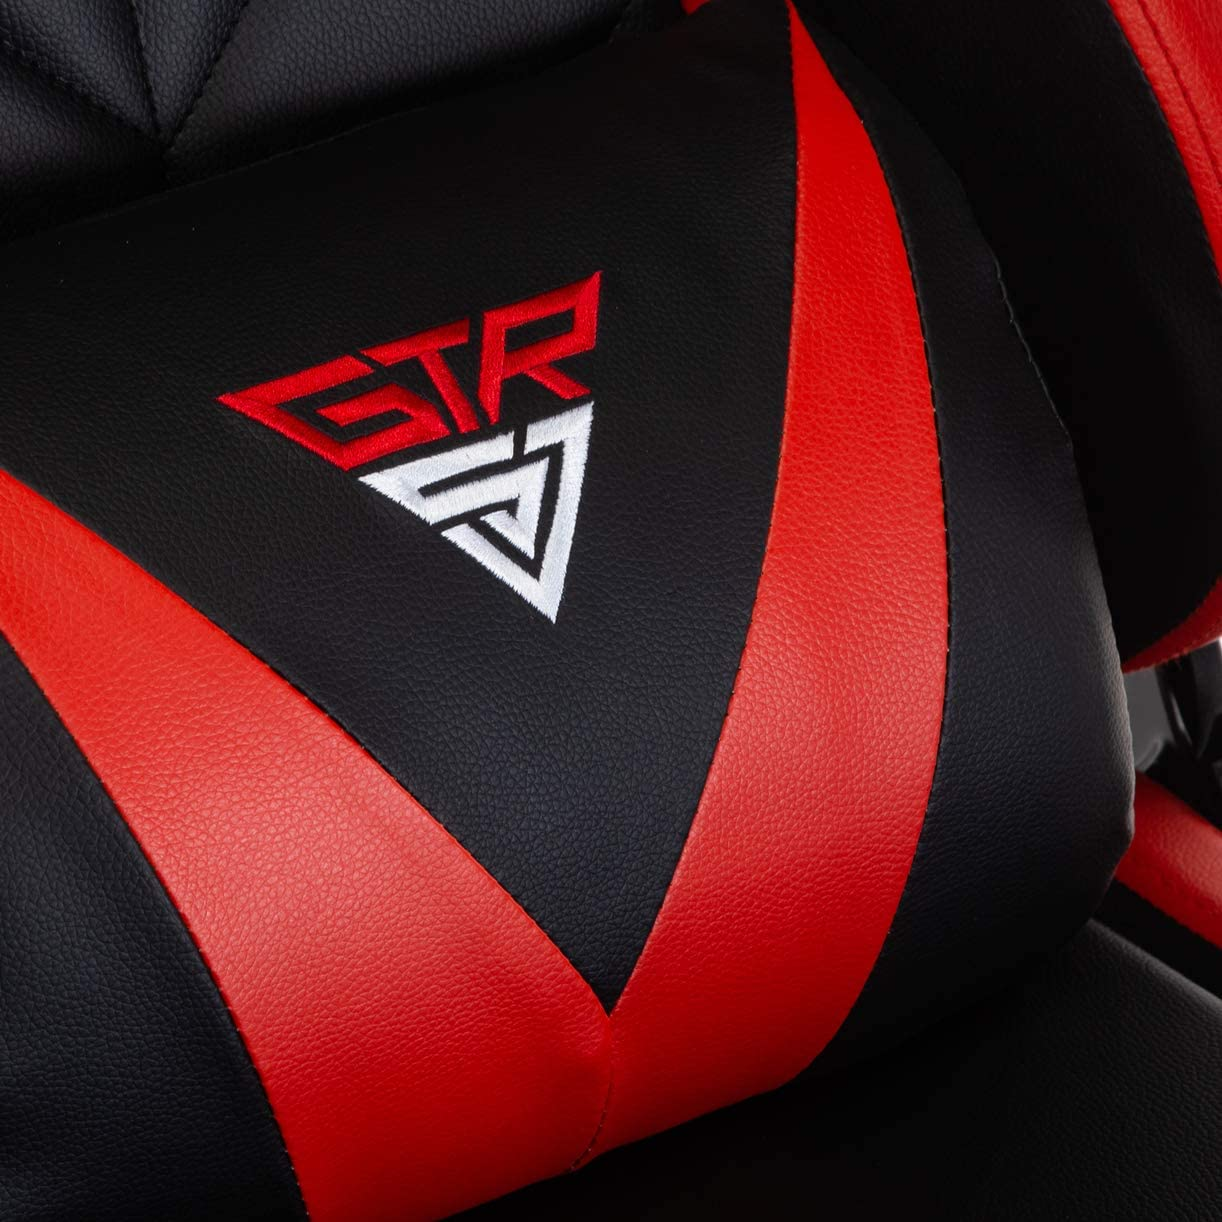 Gaming Chair with Footrest Ergonomic Recliner Computer Chair Racing Style Video Game Chair High-Back E-Sports Chair Red